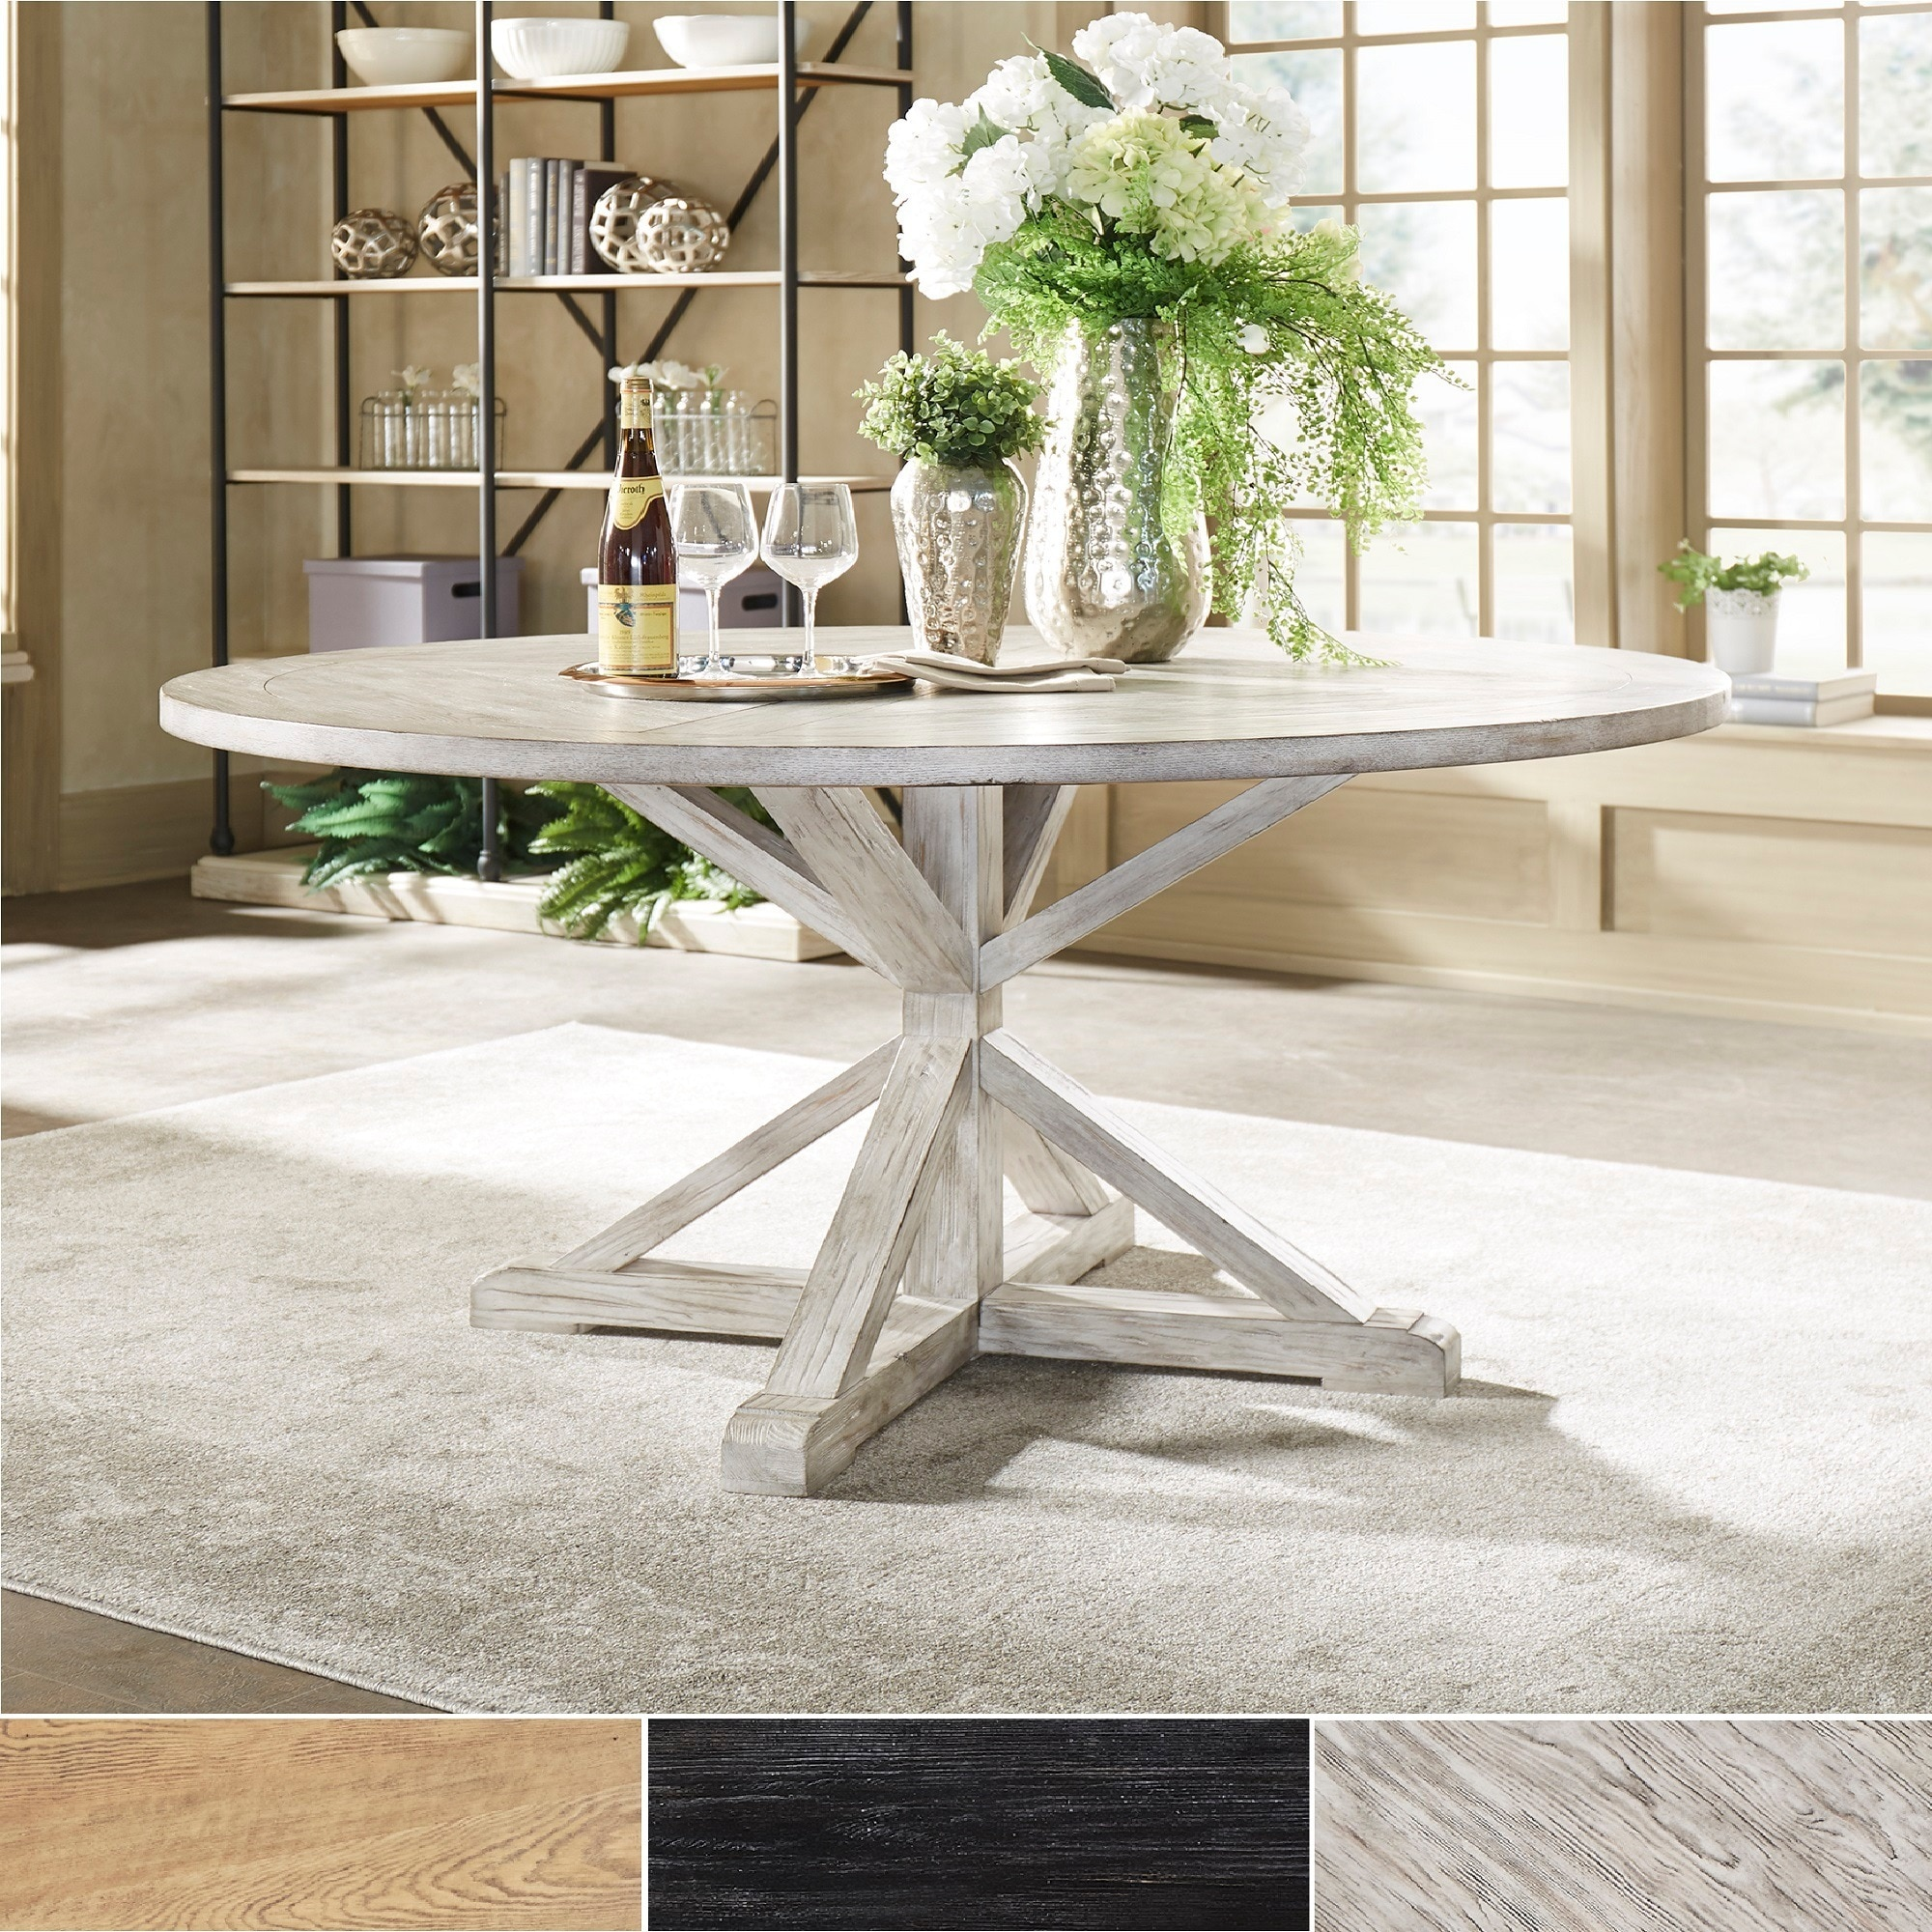 Buy Rustic Kitchen Dining Room Tables Online At Overstock Our